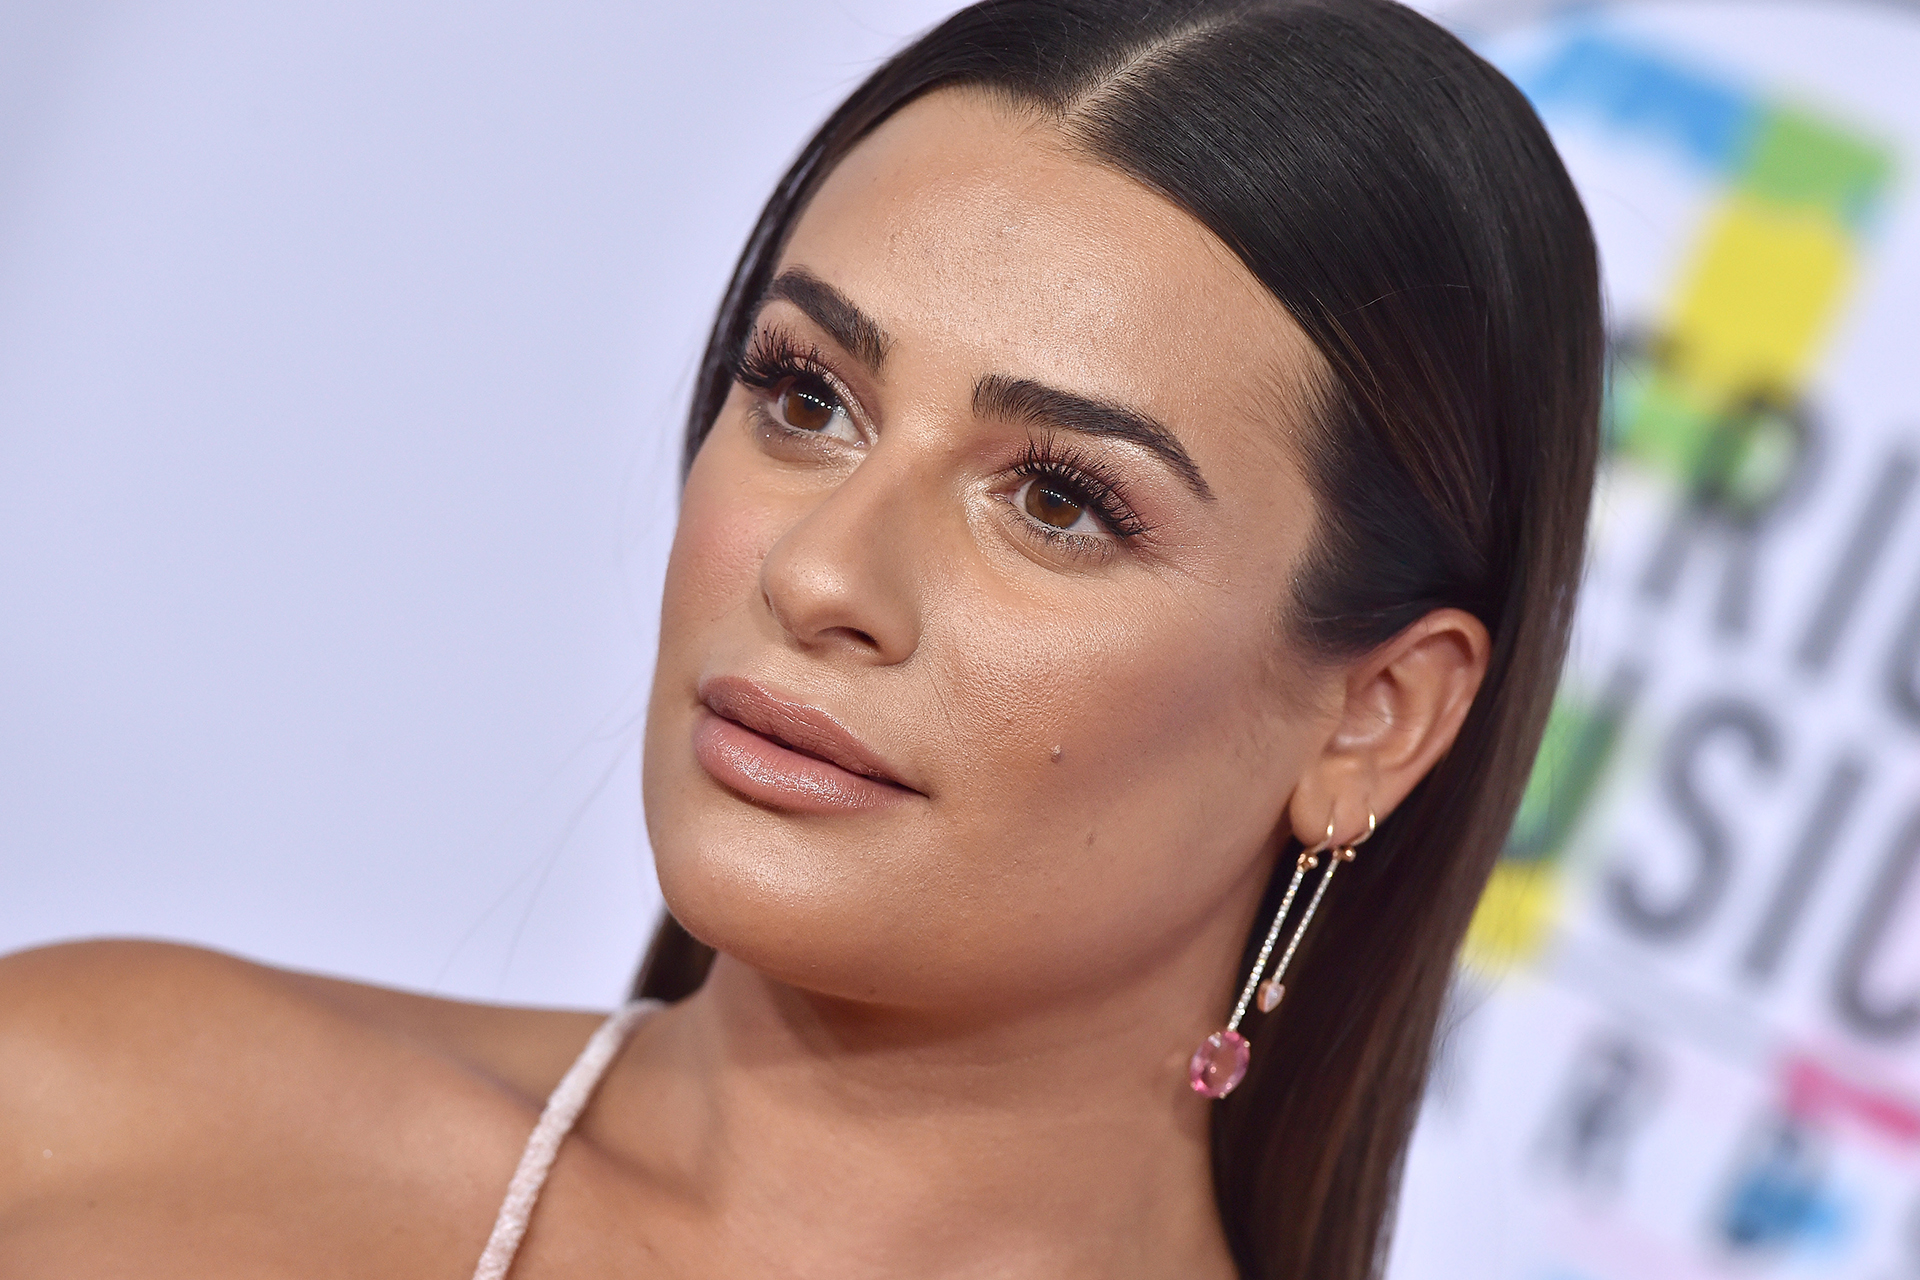 People Now: Lea Michele Says 'We Can All Grow and Change' After Costar Accuses Her of 'Tormenting'- Watch the Full Episode